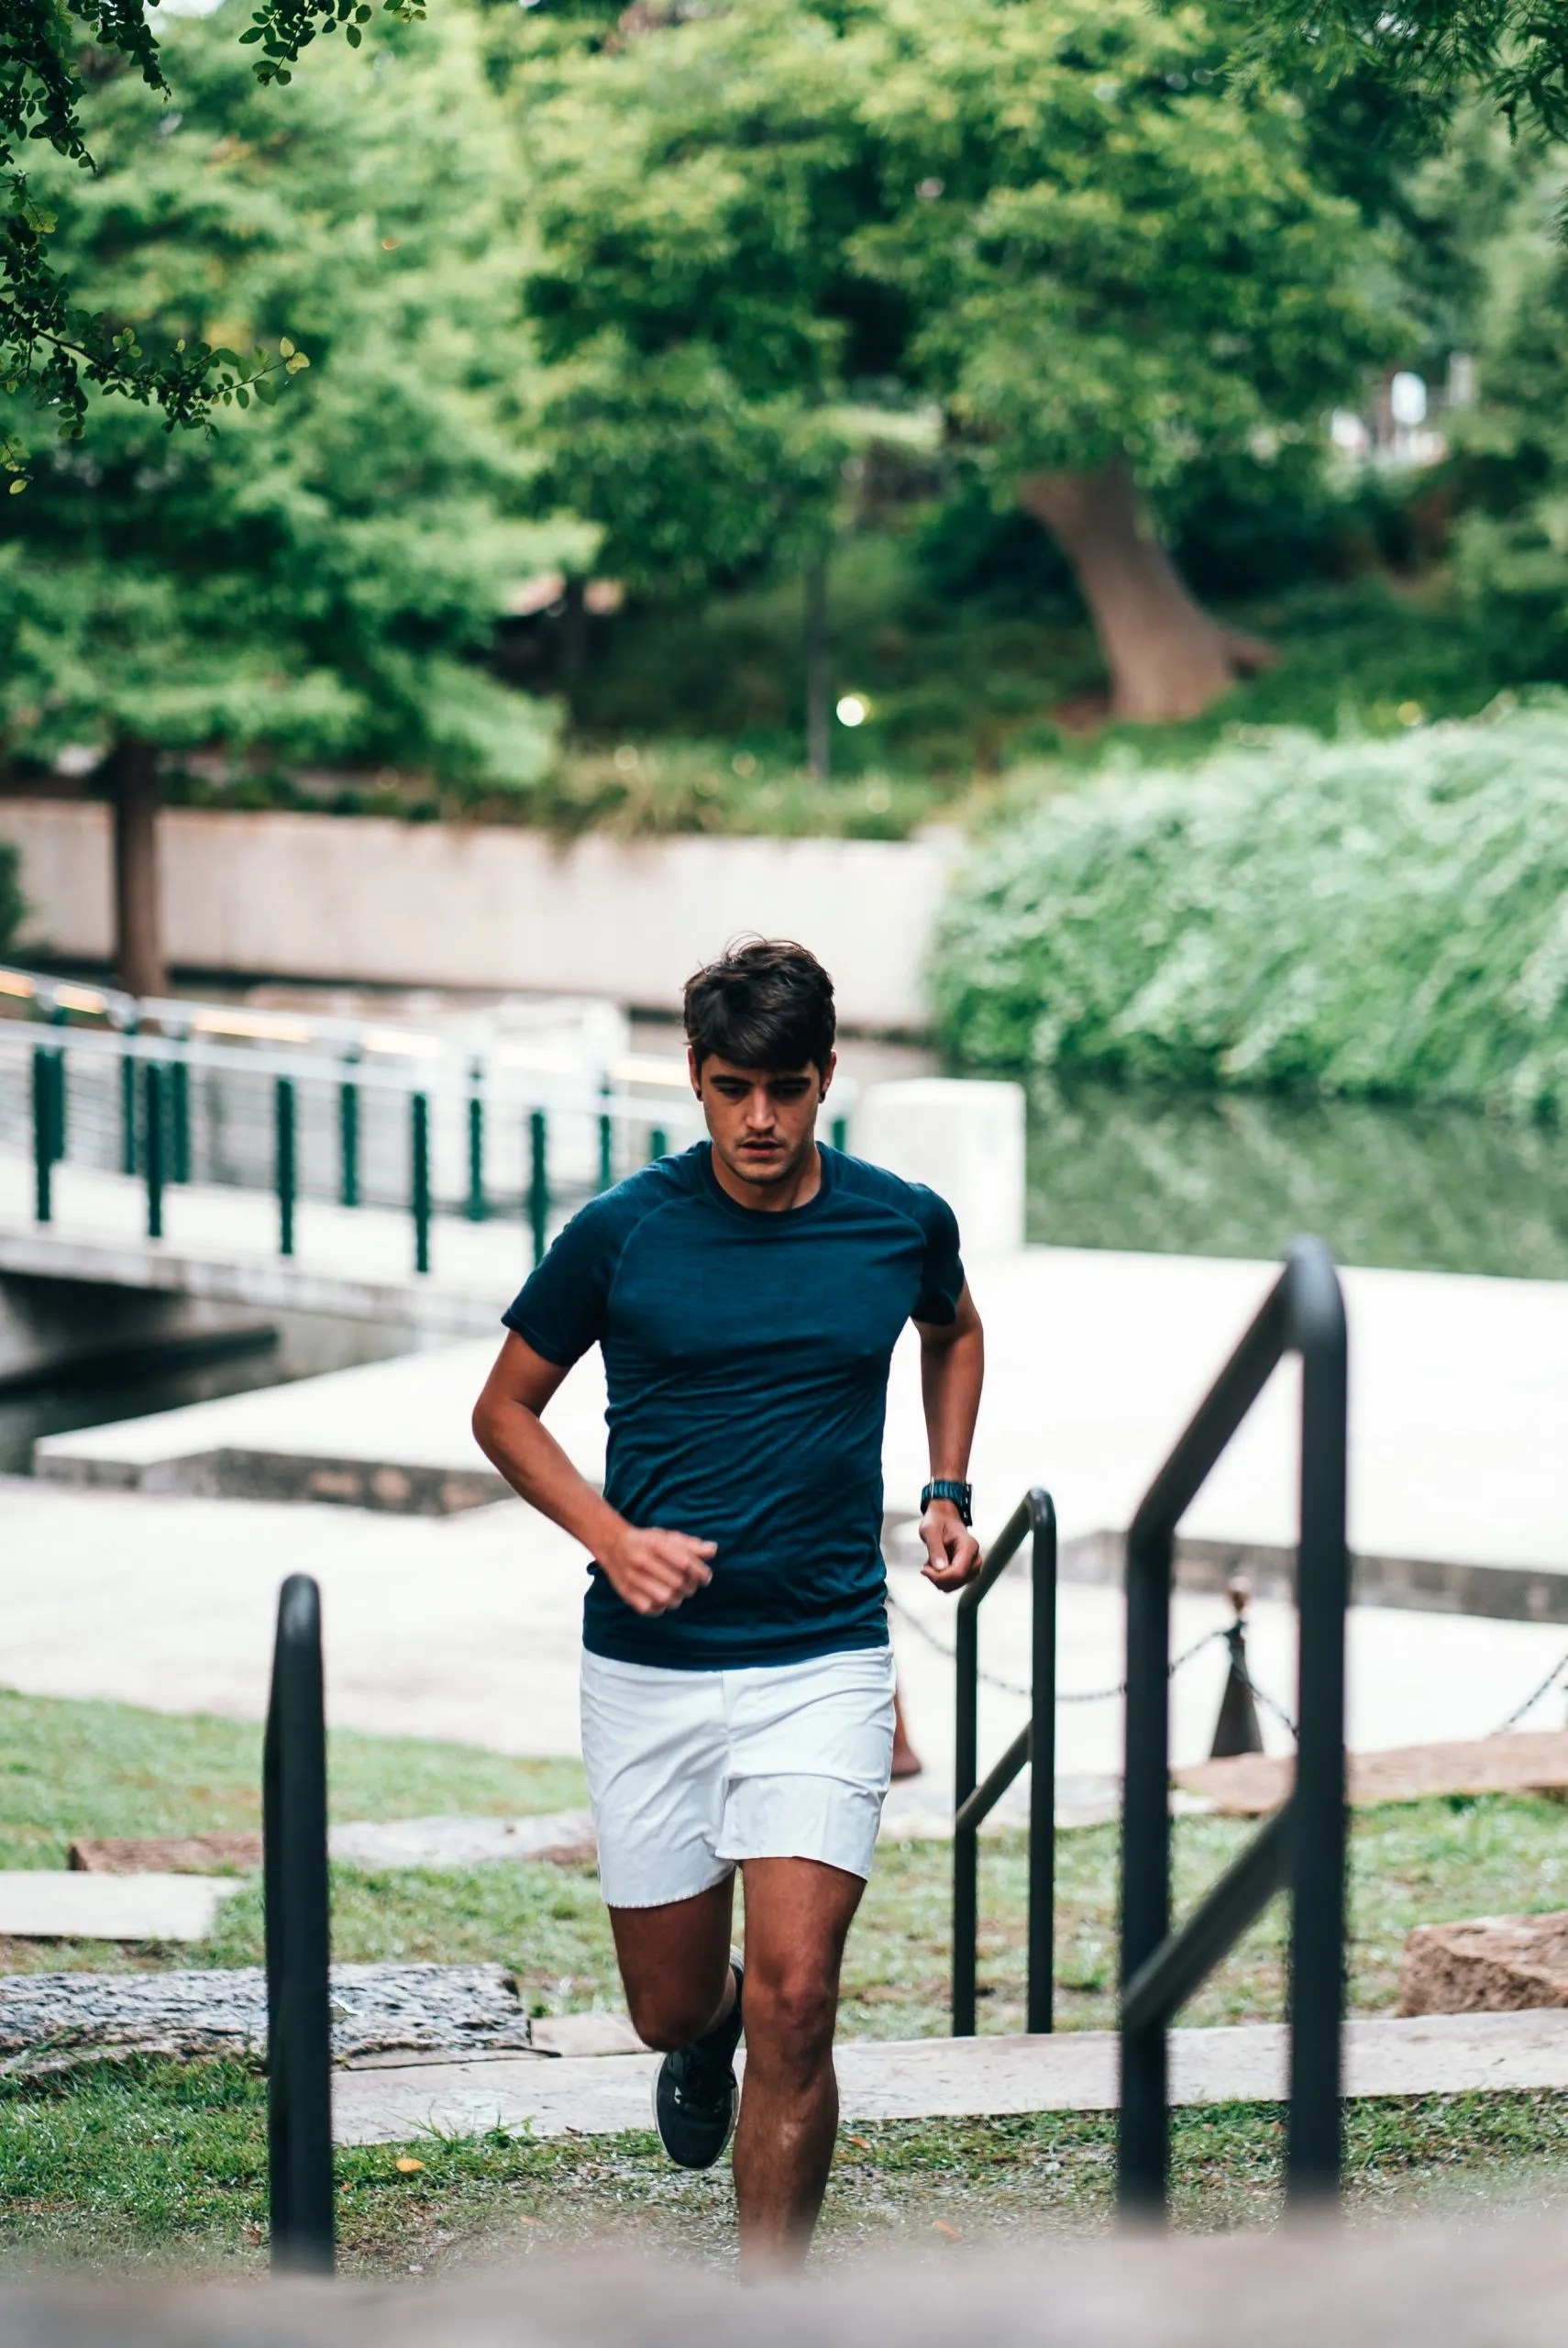 5 Simple Exercises to Improve Leg Strength for Running